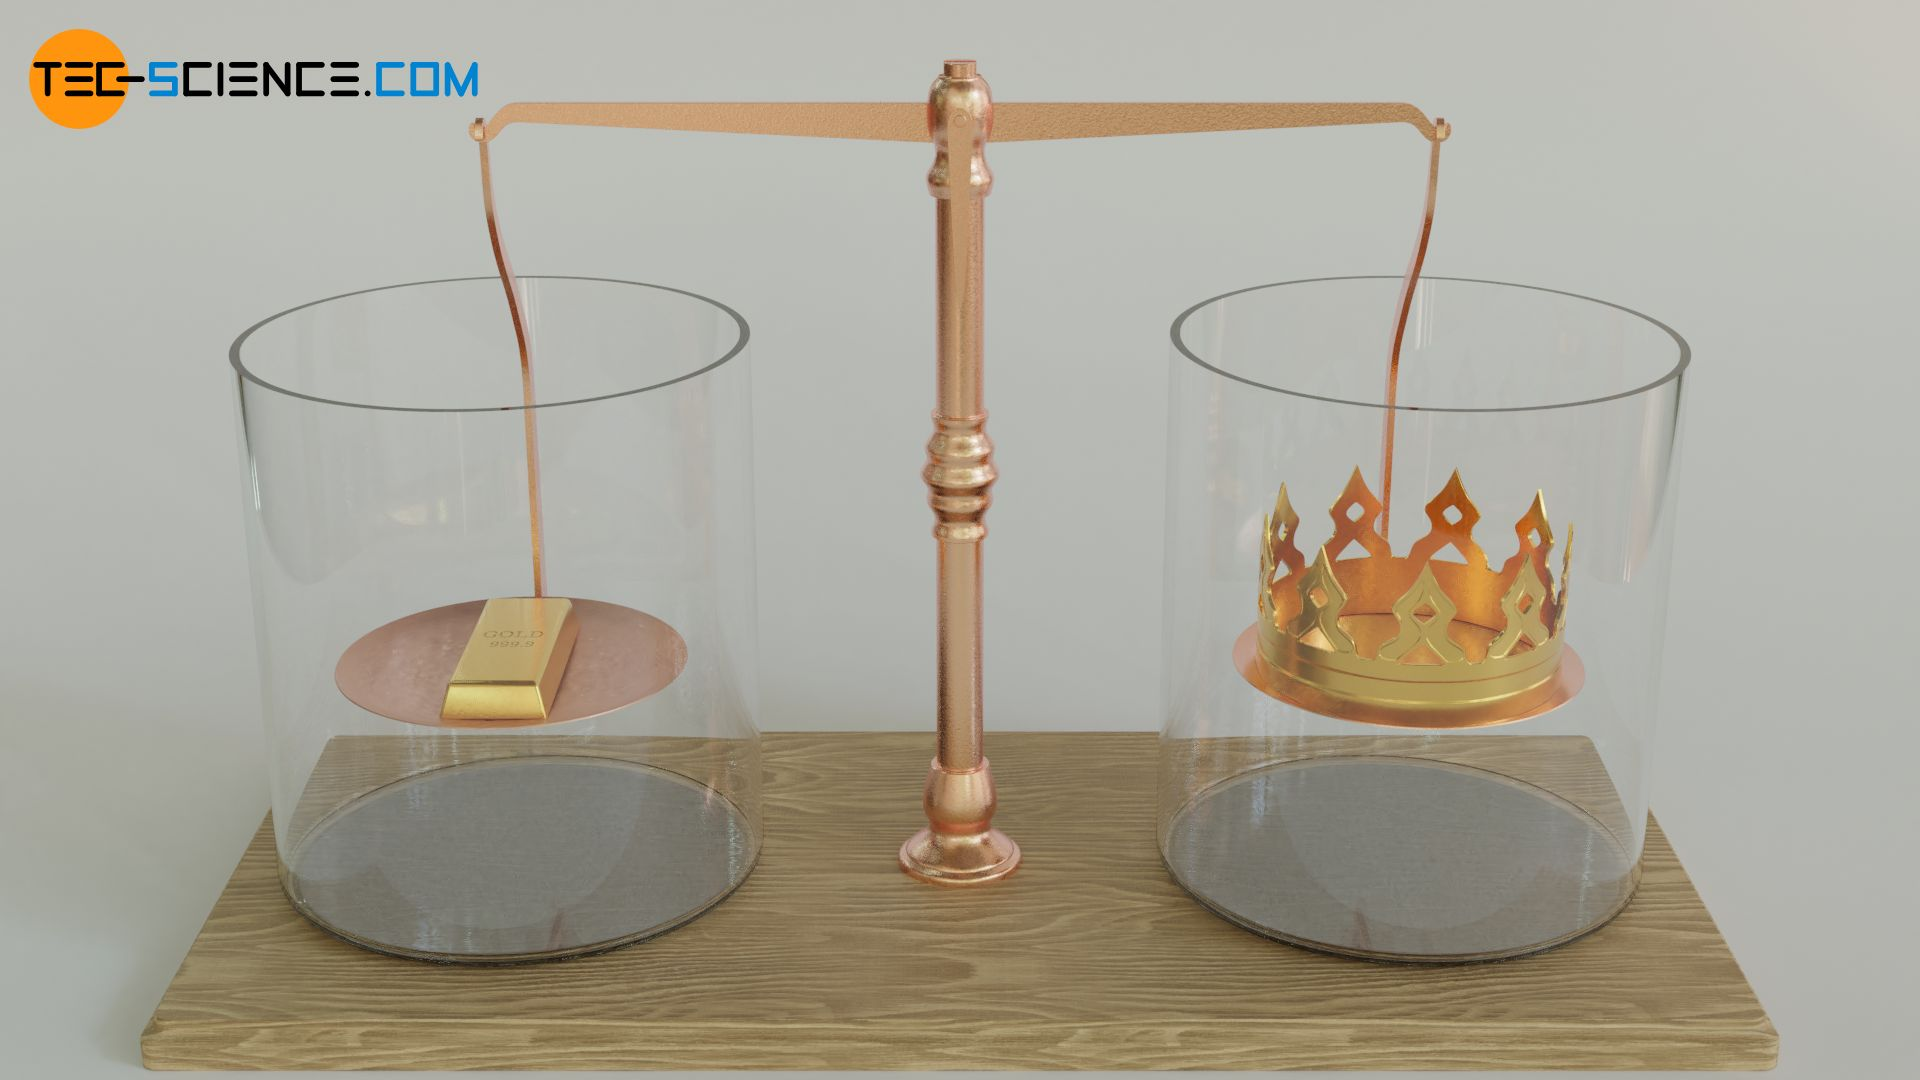 Gold ingot and crown of the same mass on a beam scale (balance)